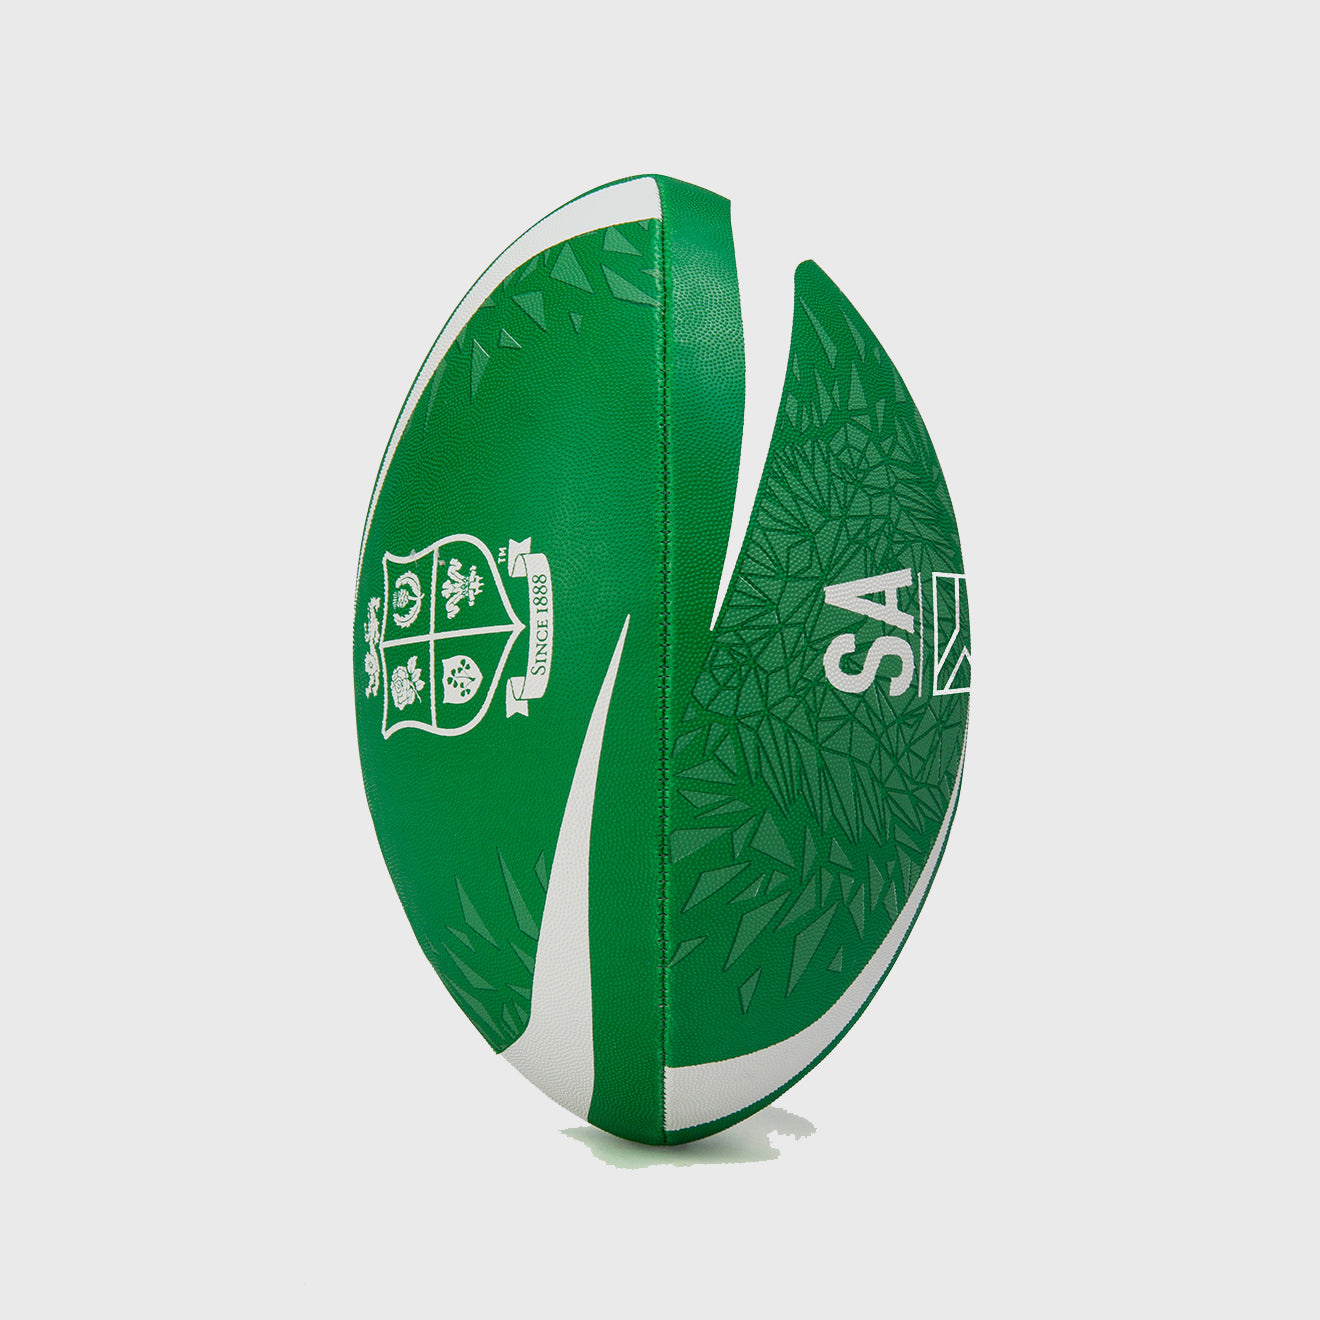 British & Irish Lions SA 2021 Thrillseeker Supporter Rugby Ball Green